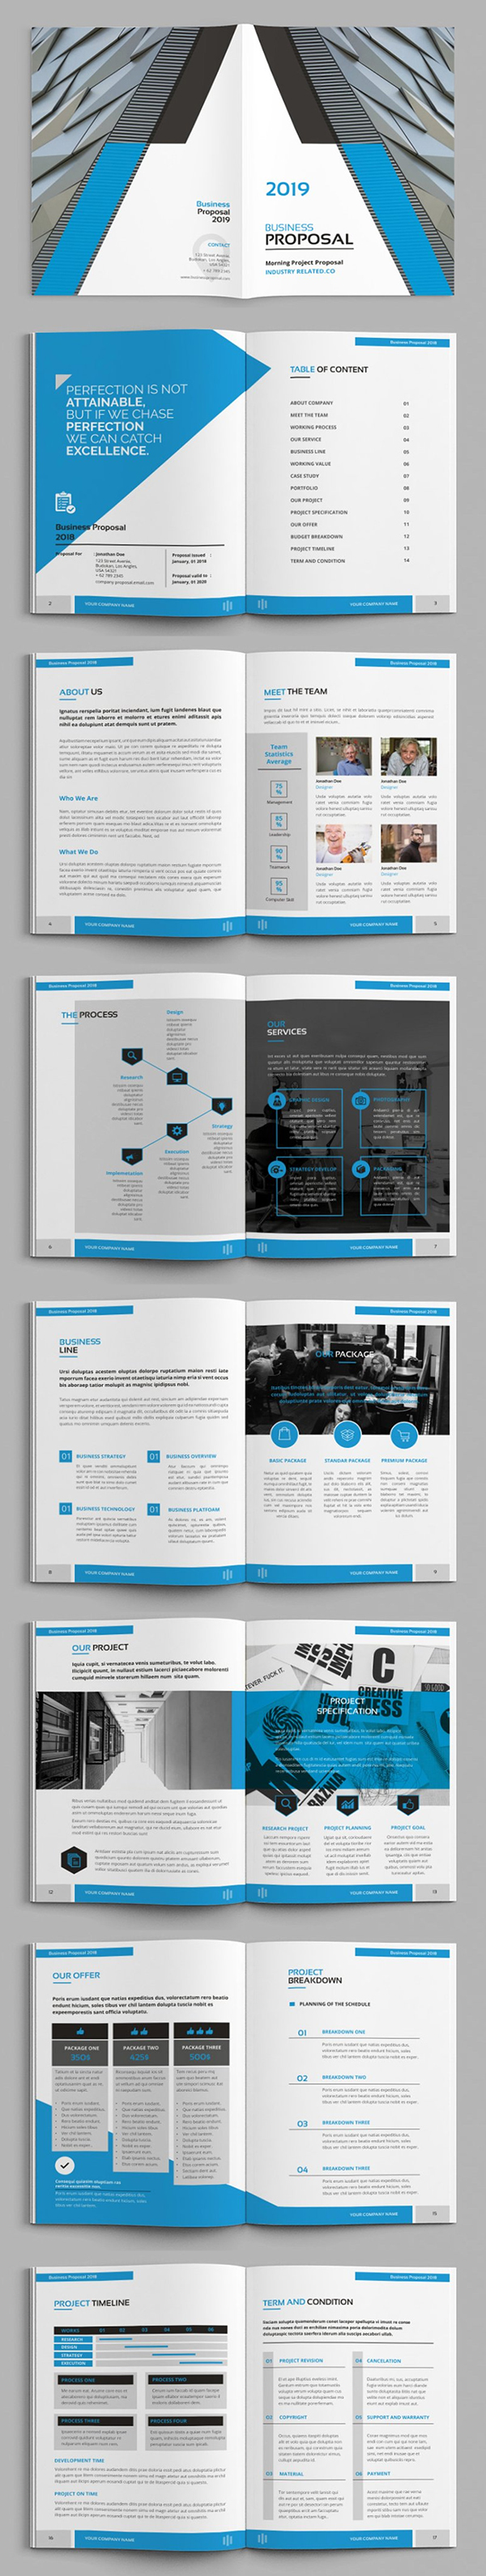 Yuzn - A4 Proposal Brochure Template